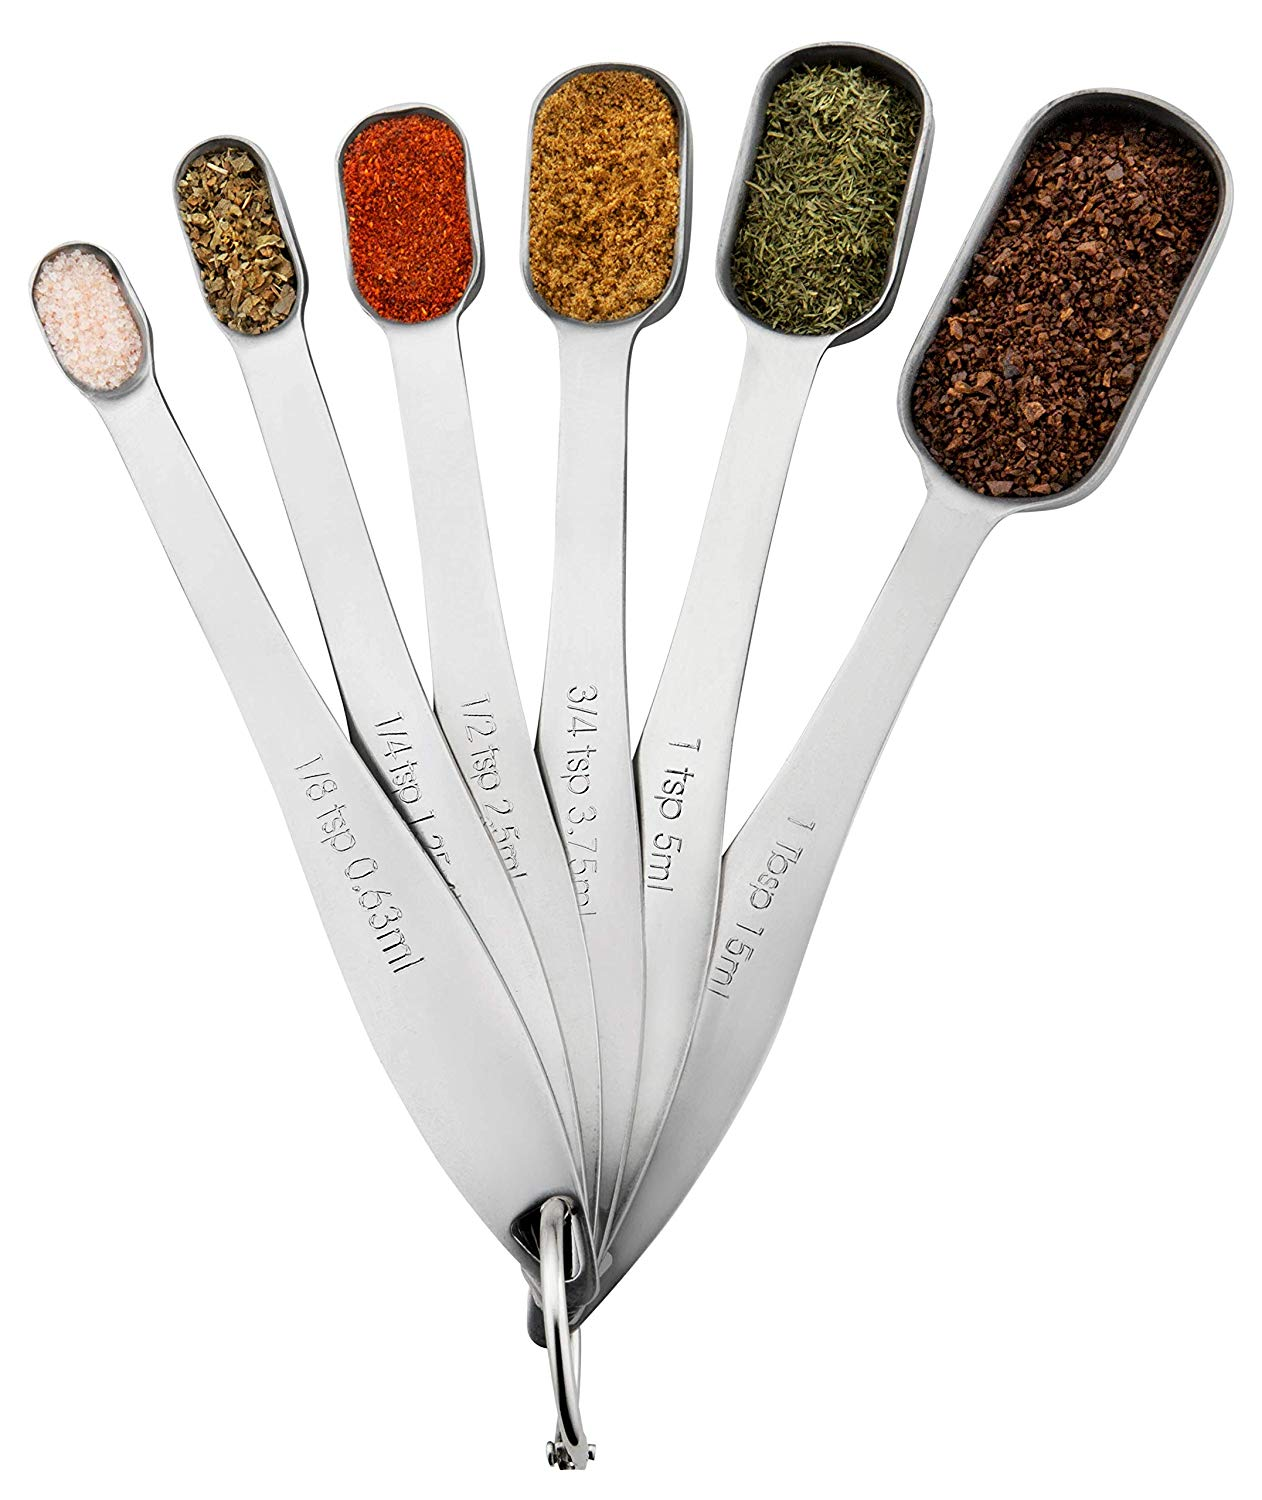 items for your kitchen measuring spoons